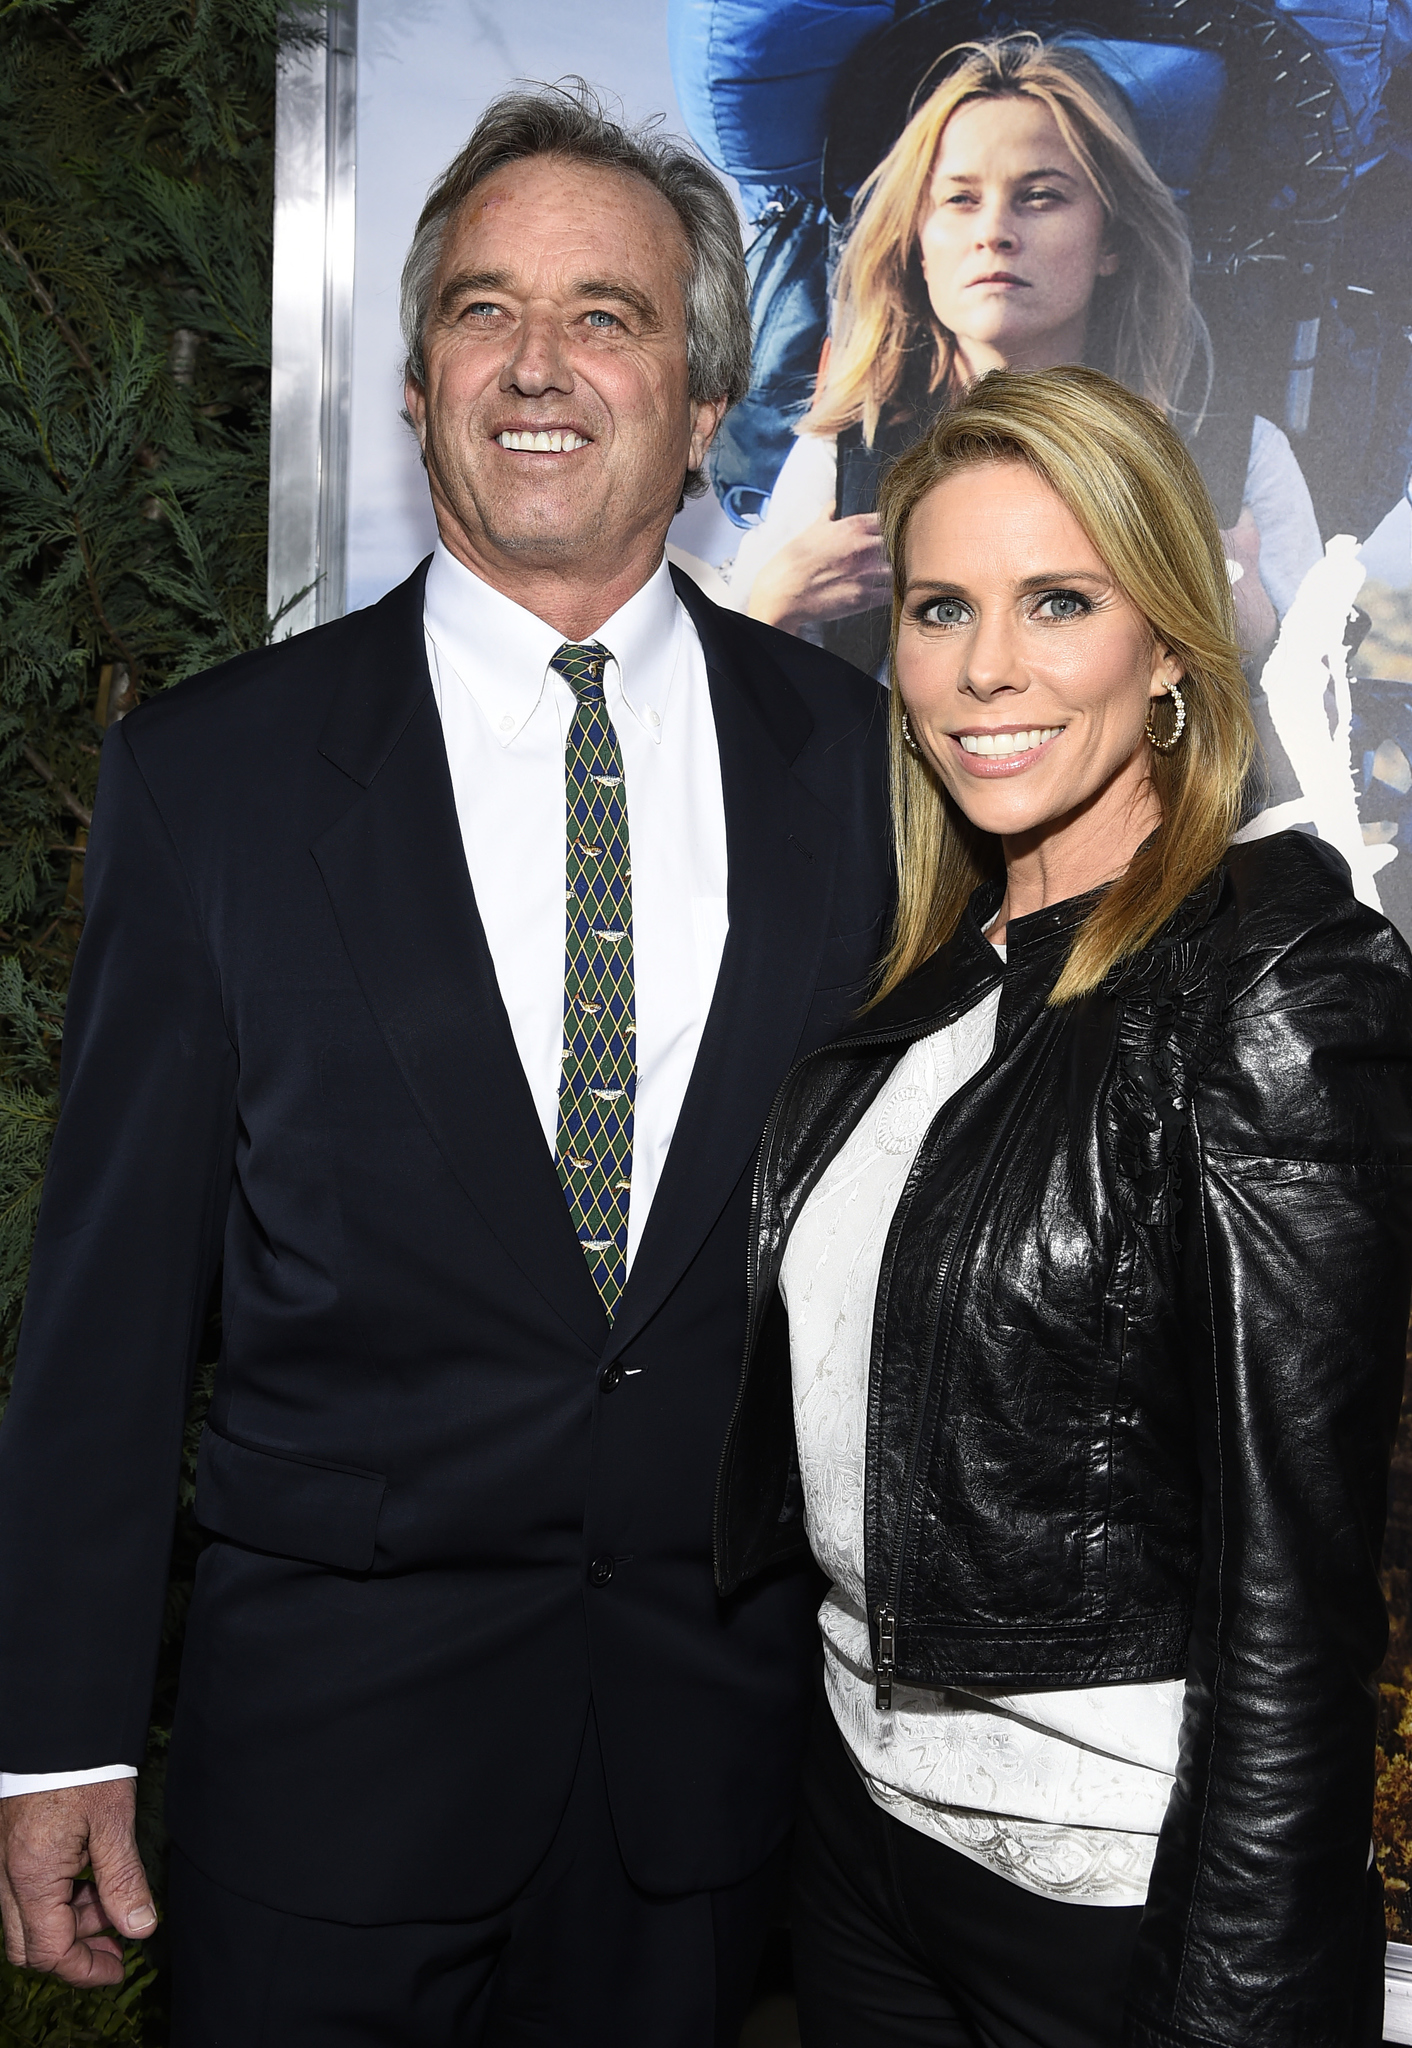 Cheryl Hines and Robert F. Kennedy Jr. at an event for Wild (2014)